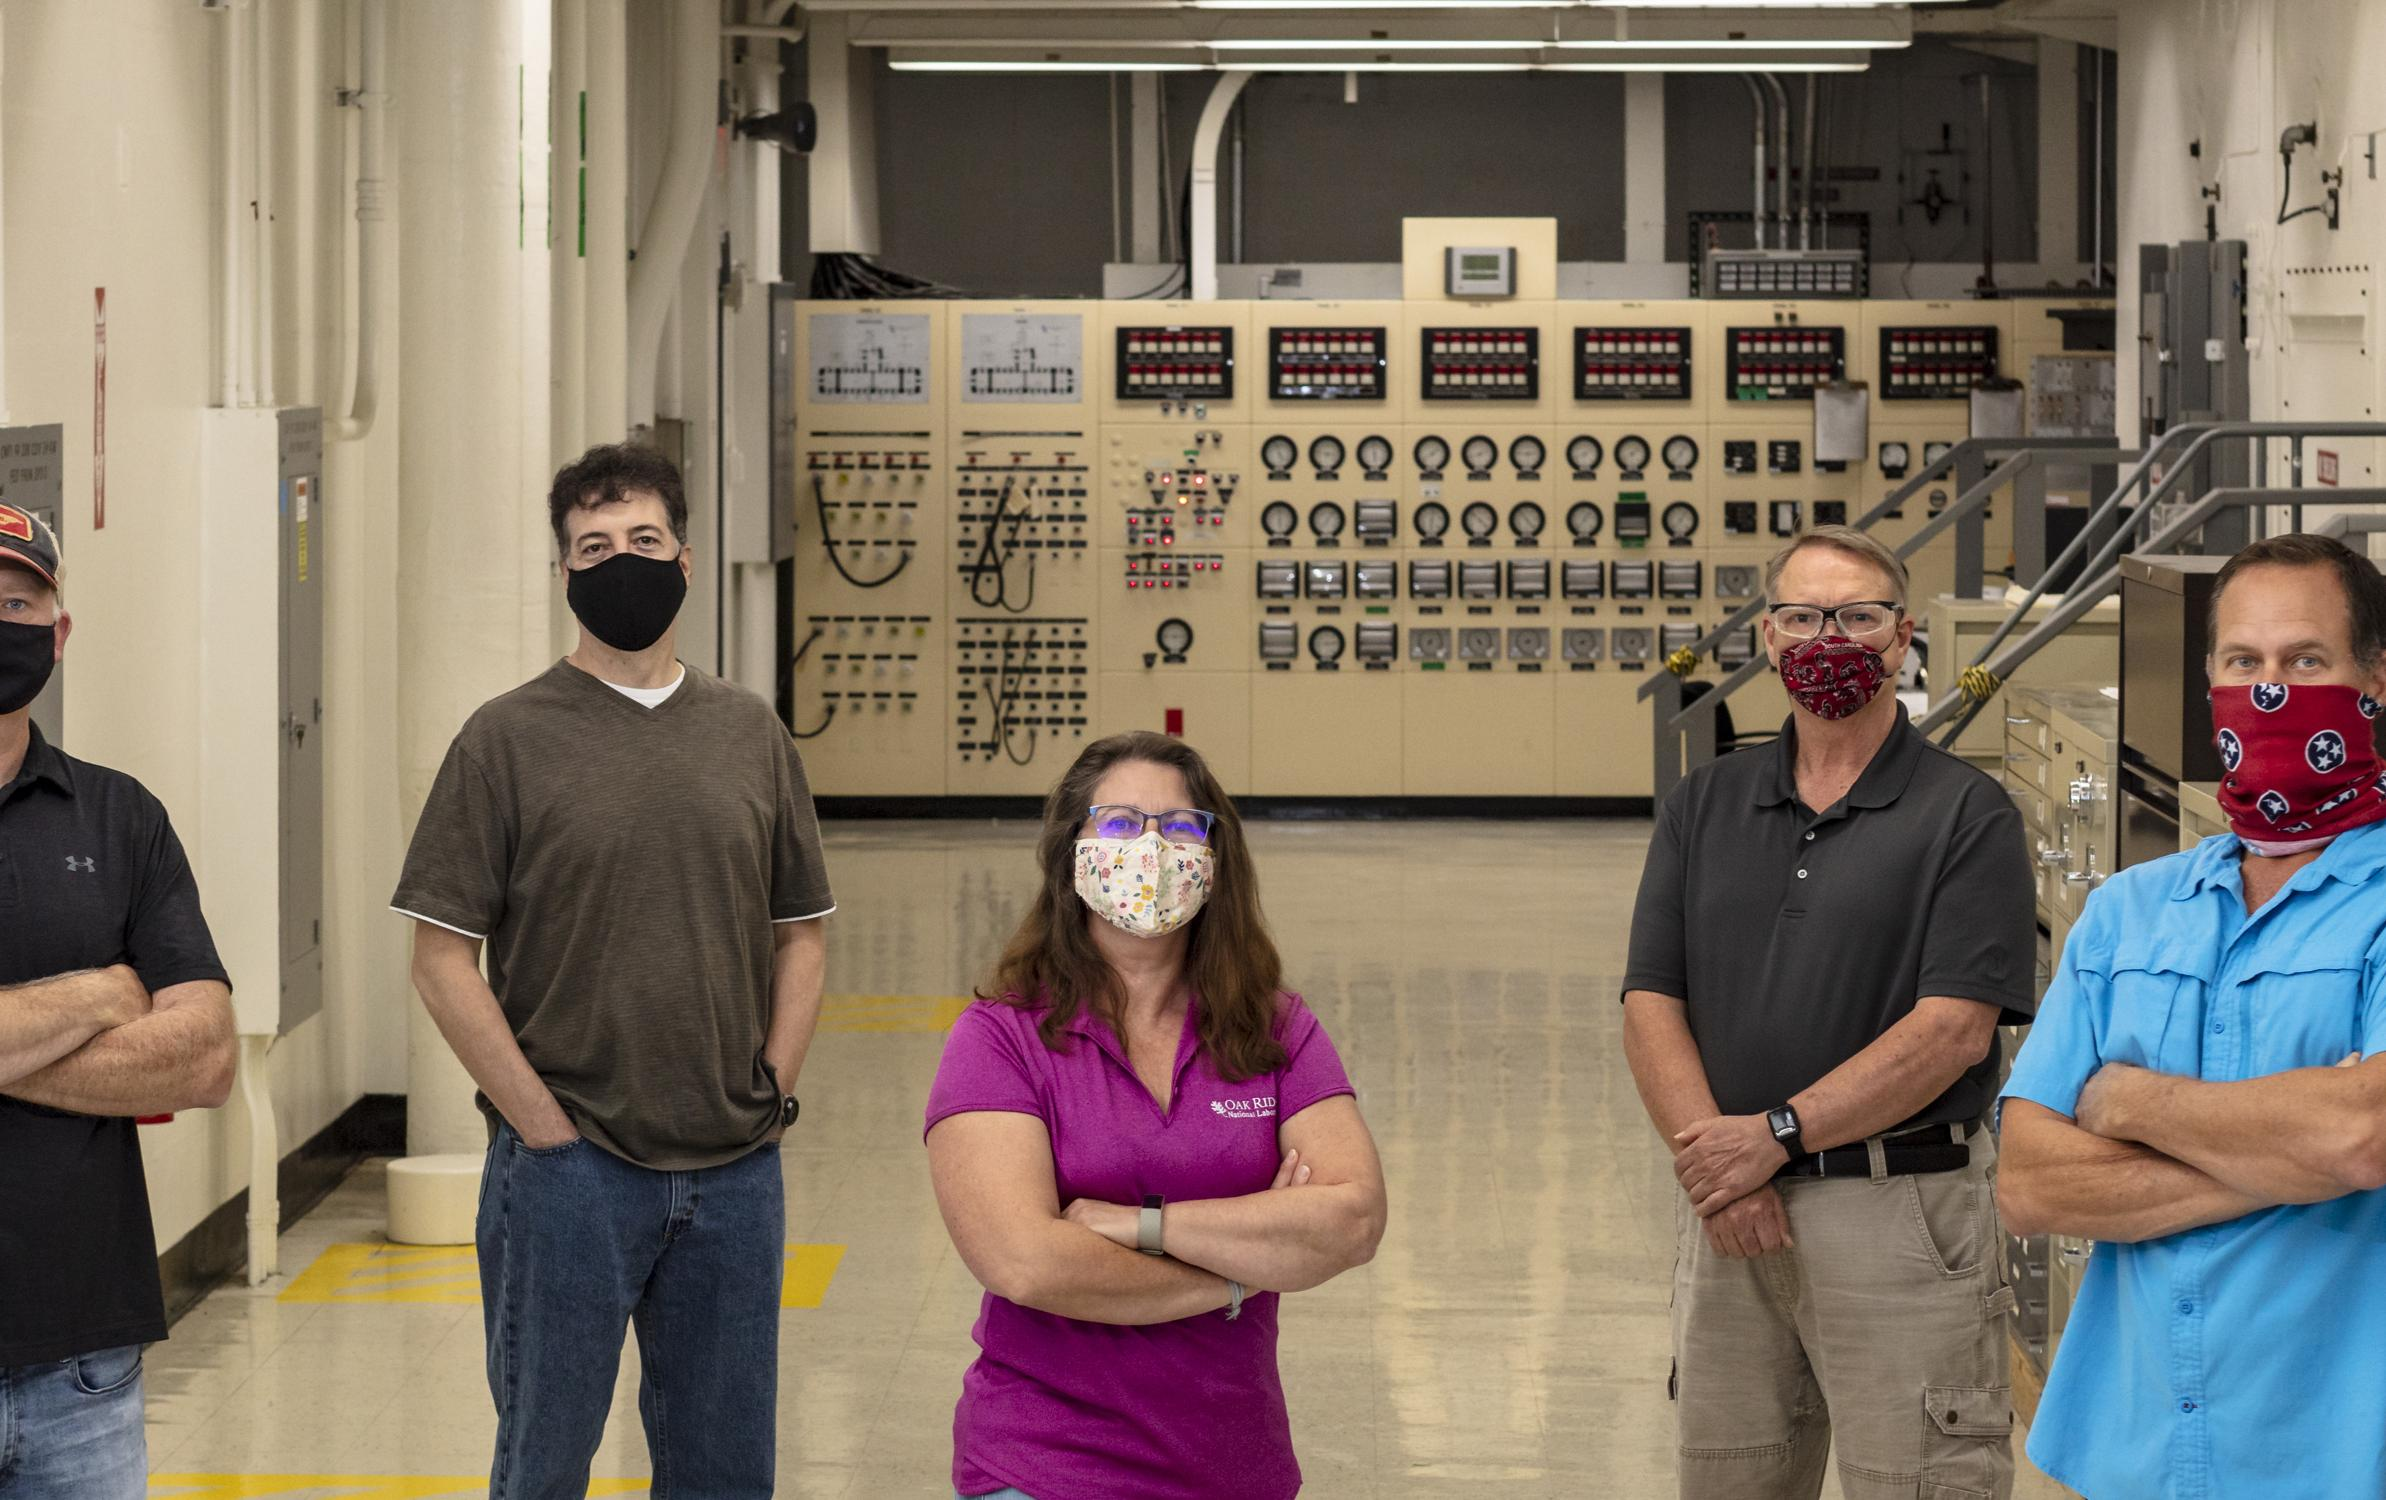 Californium-272 production team. Standing left to right - John Courtney, Dan Bettinger, Julie Ezold, Ed Smith, and Scott White.